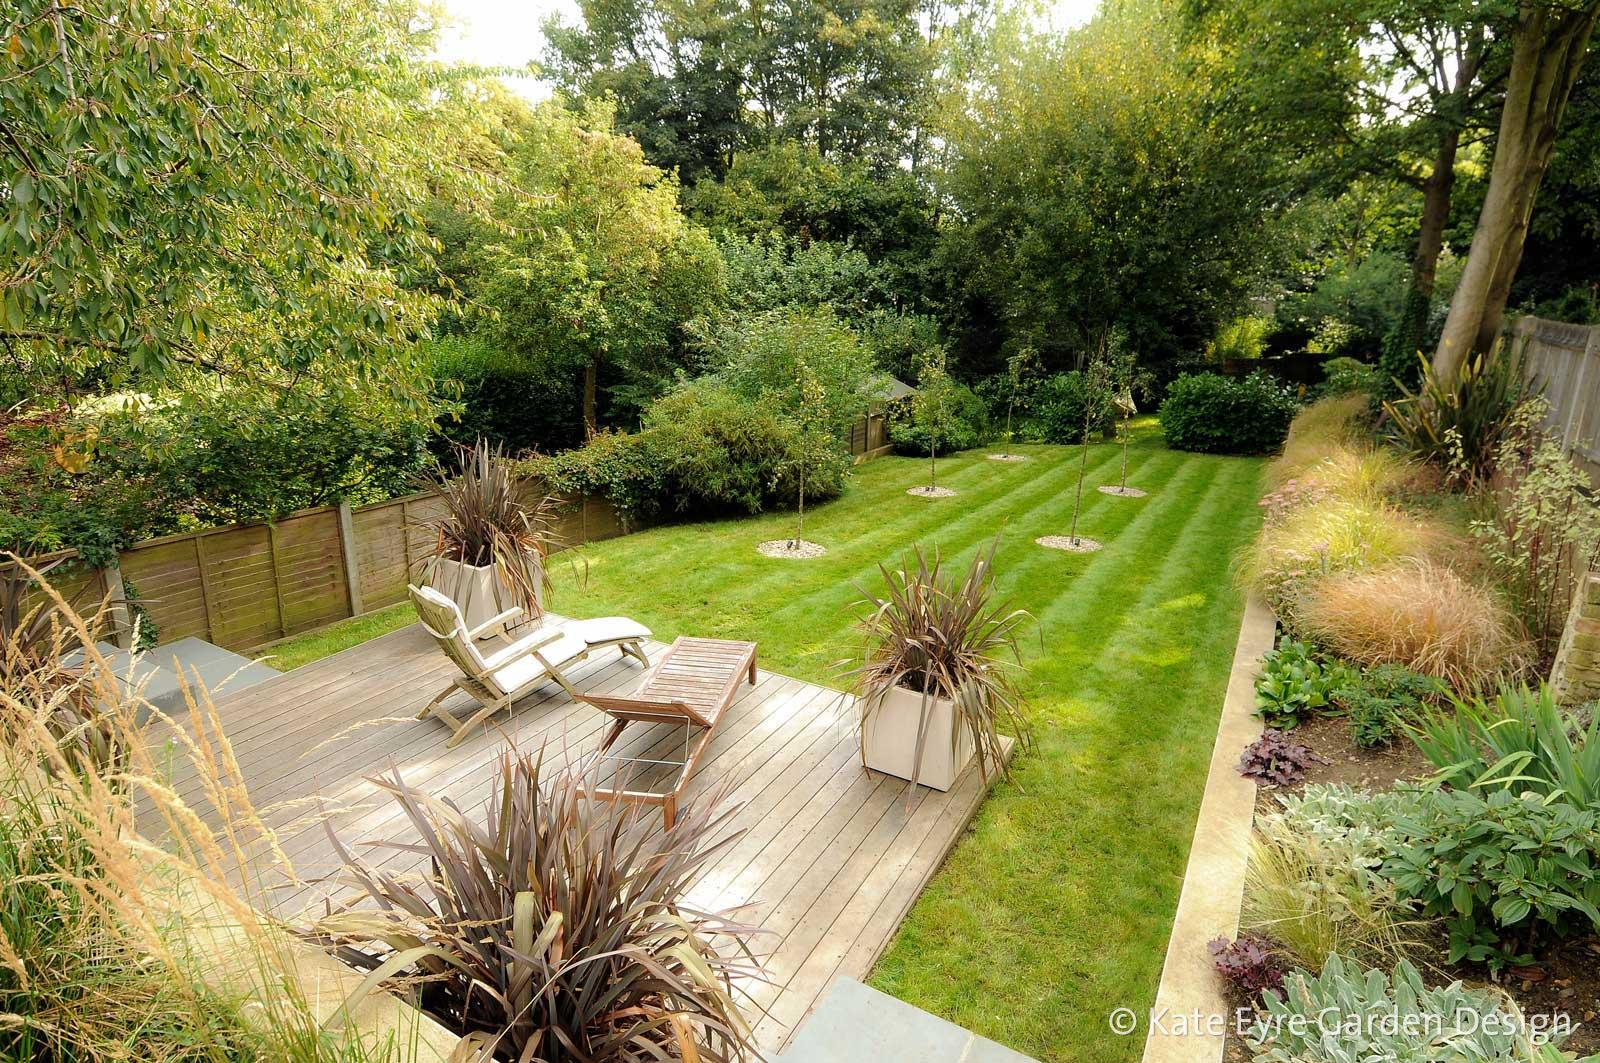 Garden design in crystal palace south east london for In the garden landscape and design